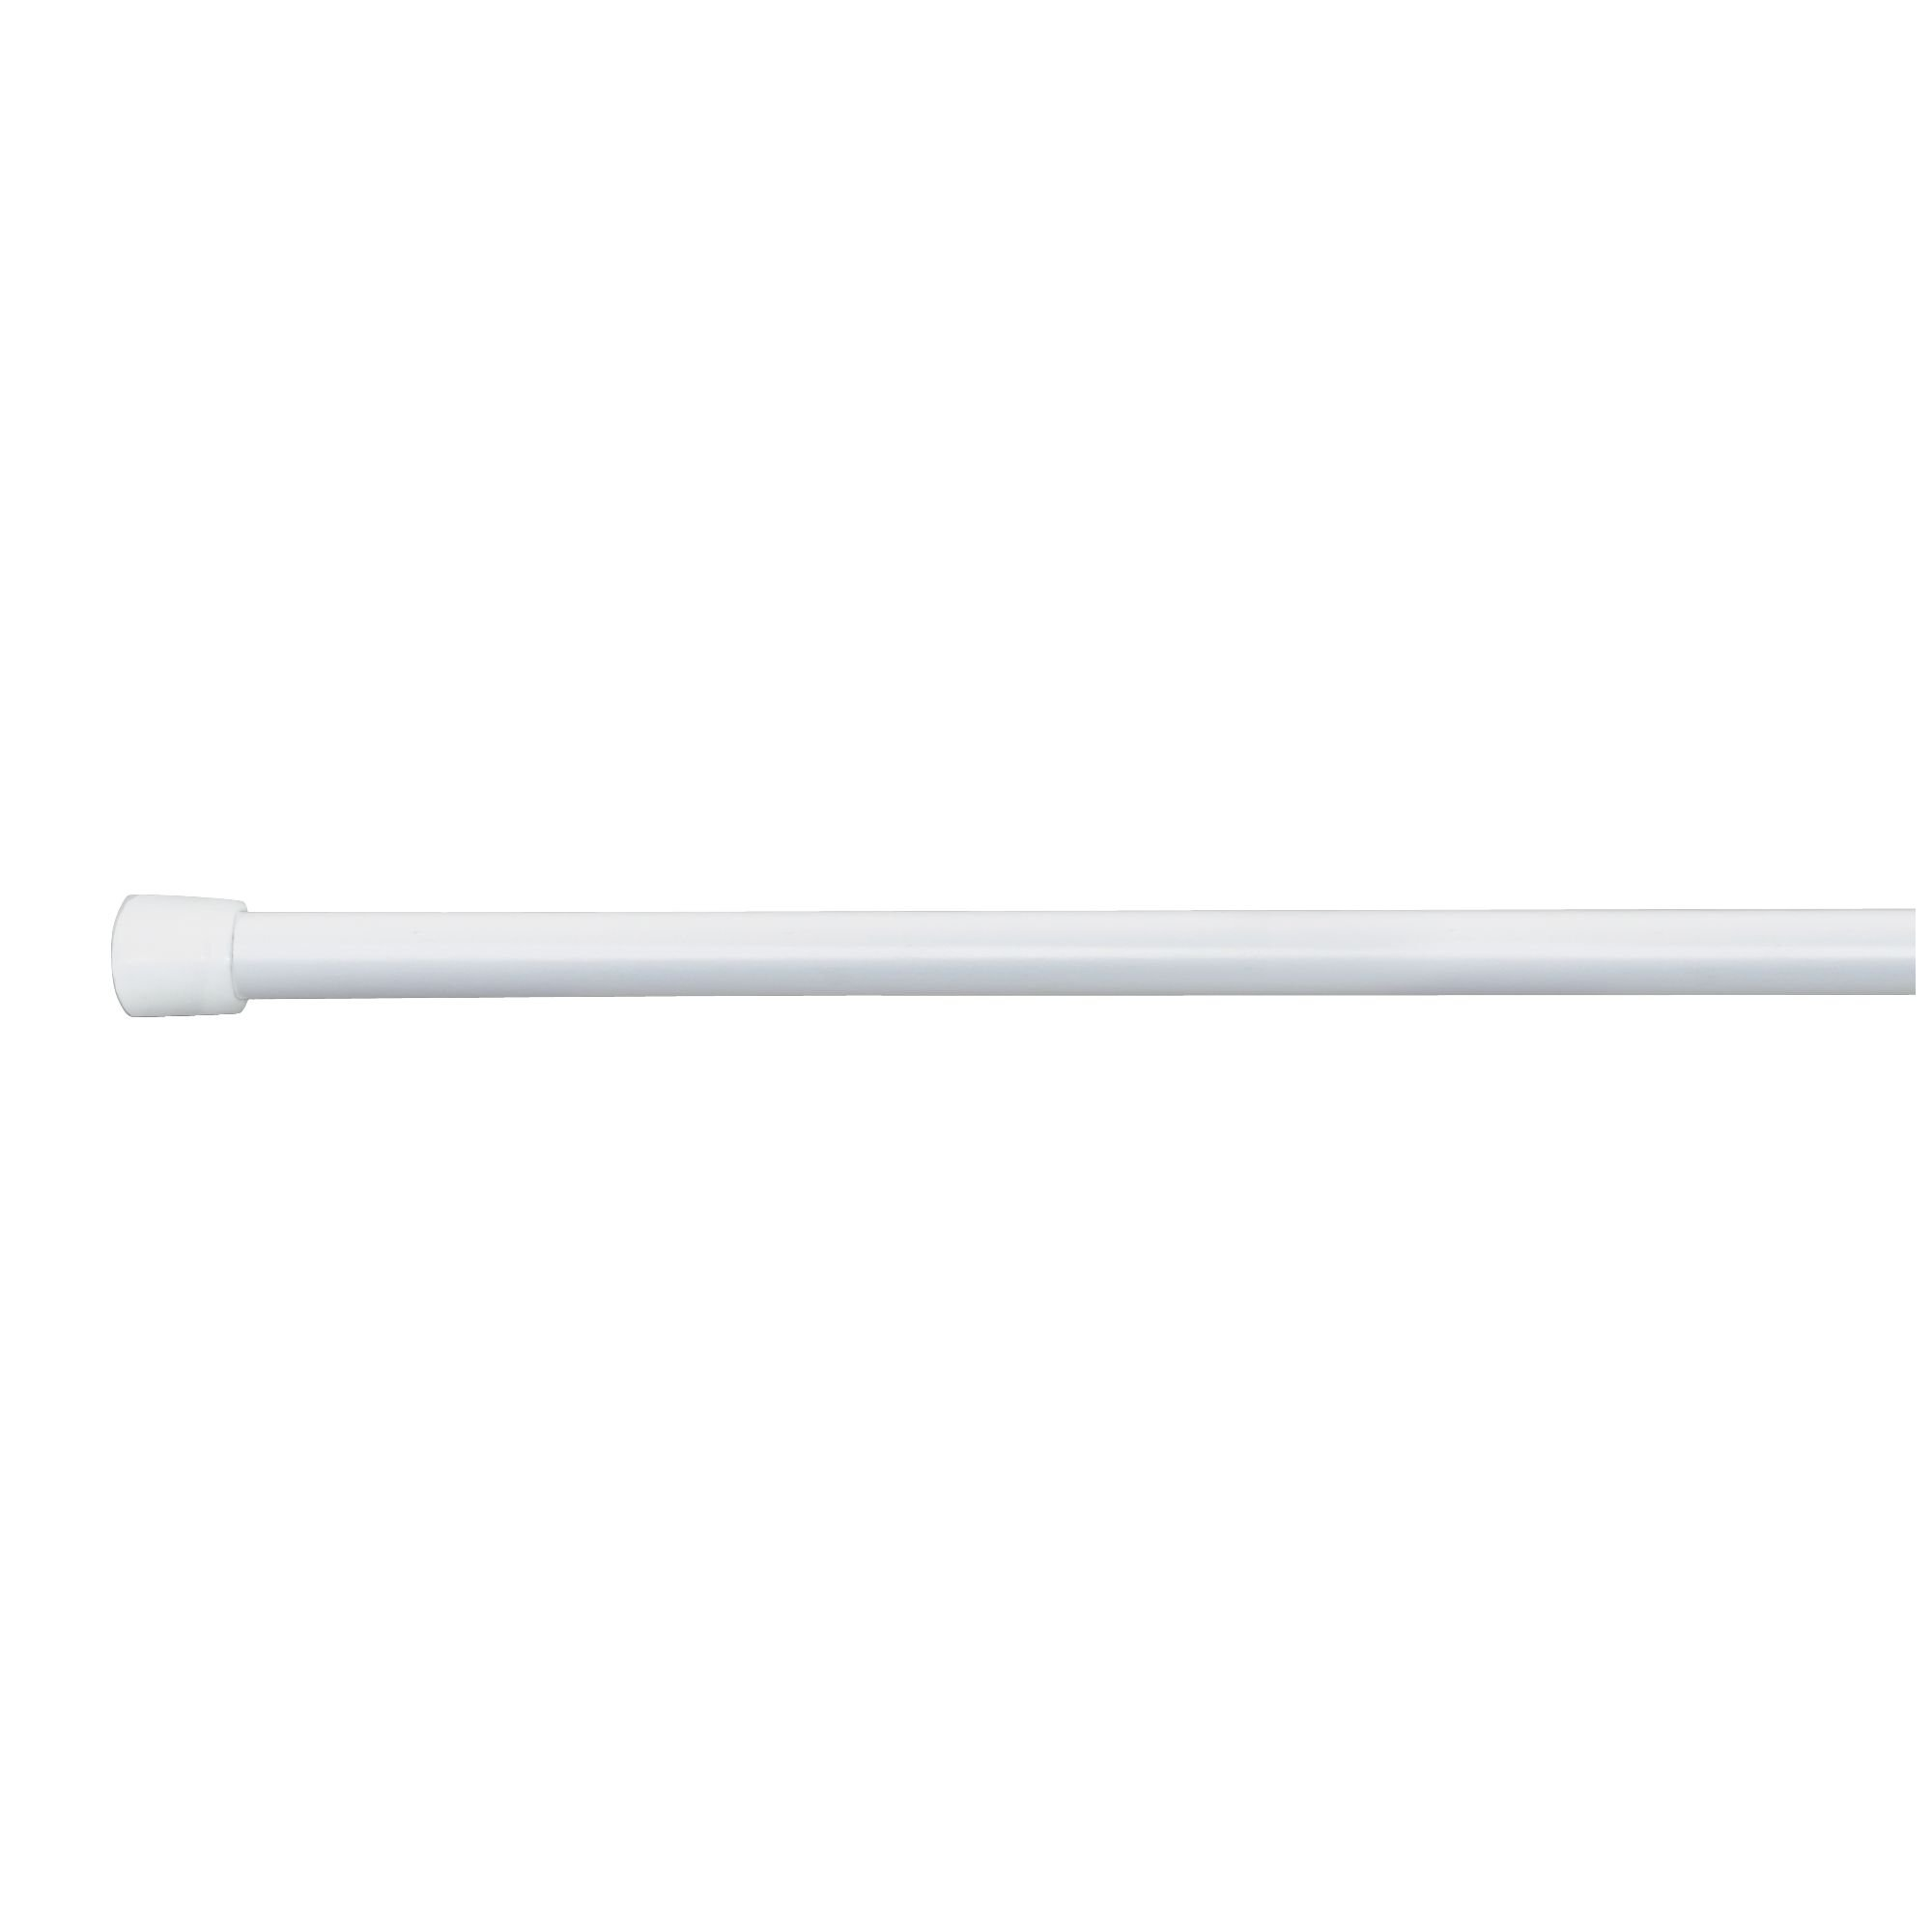 InterDesign Cameo Expandable Stainless Steel Constant Tension Bathroom Shower Curtain Rod, Large, 50''- 87'' Width – Pack of 2, White